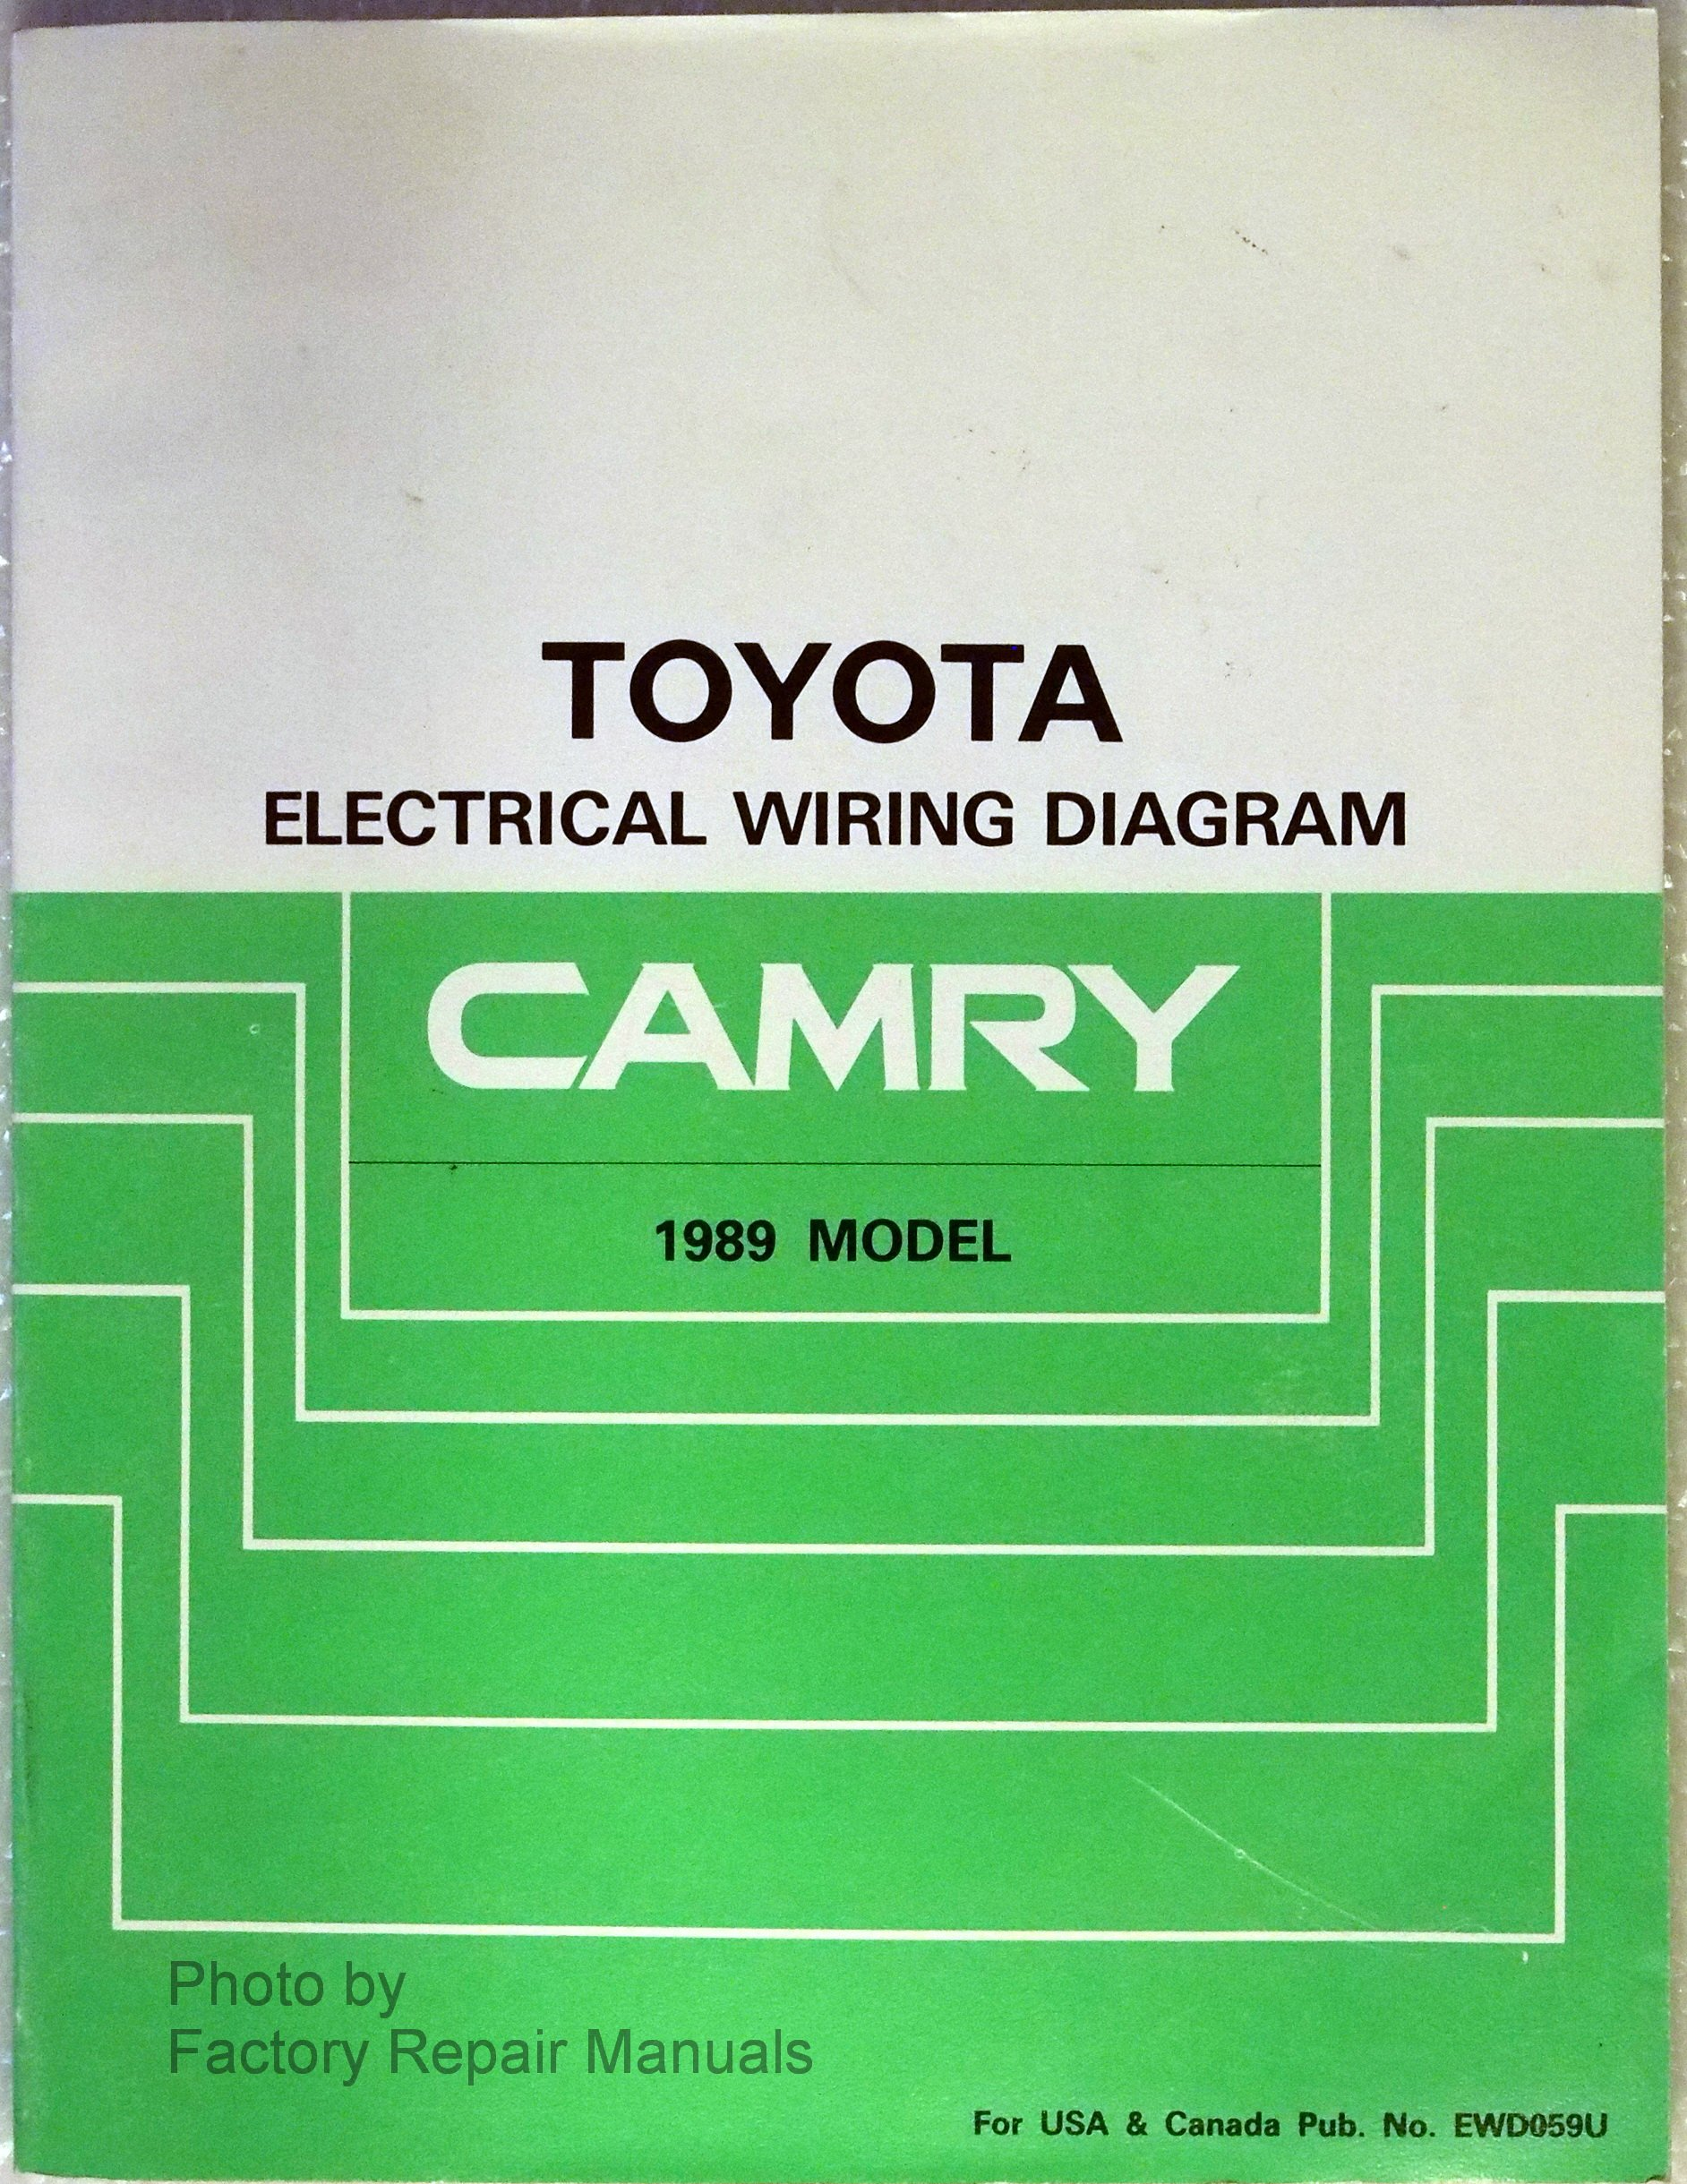 Camry Body Diagram Auto Electrical Wiring 2007 Toyota Free Image About 1989 Manual Rh Amazon Com Parts 1997 Engine